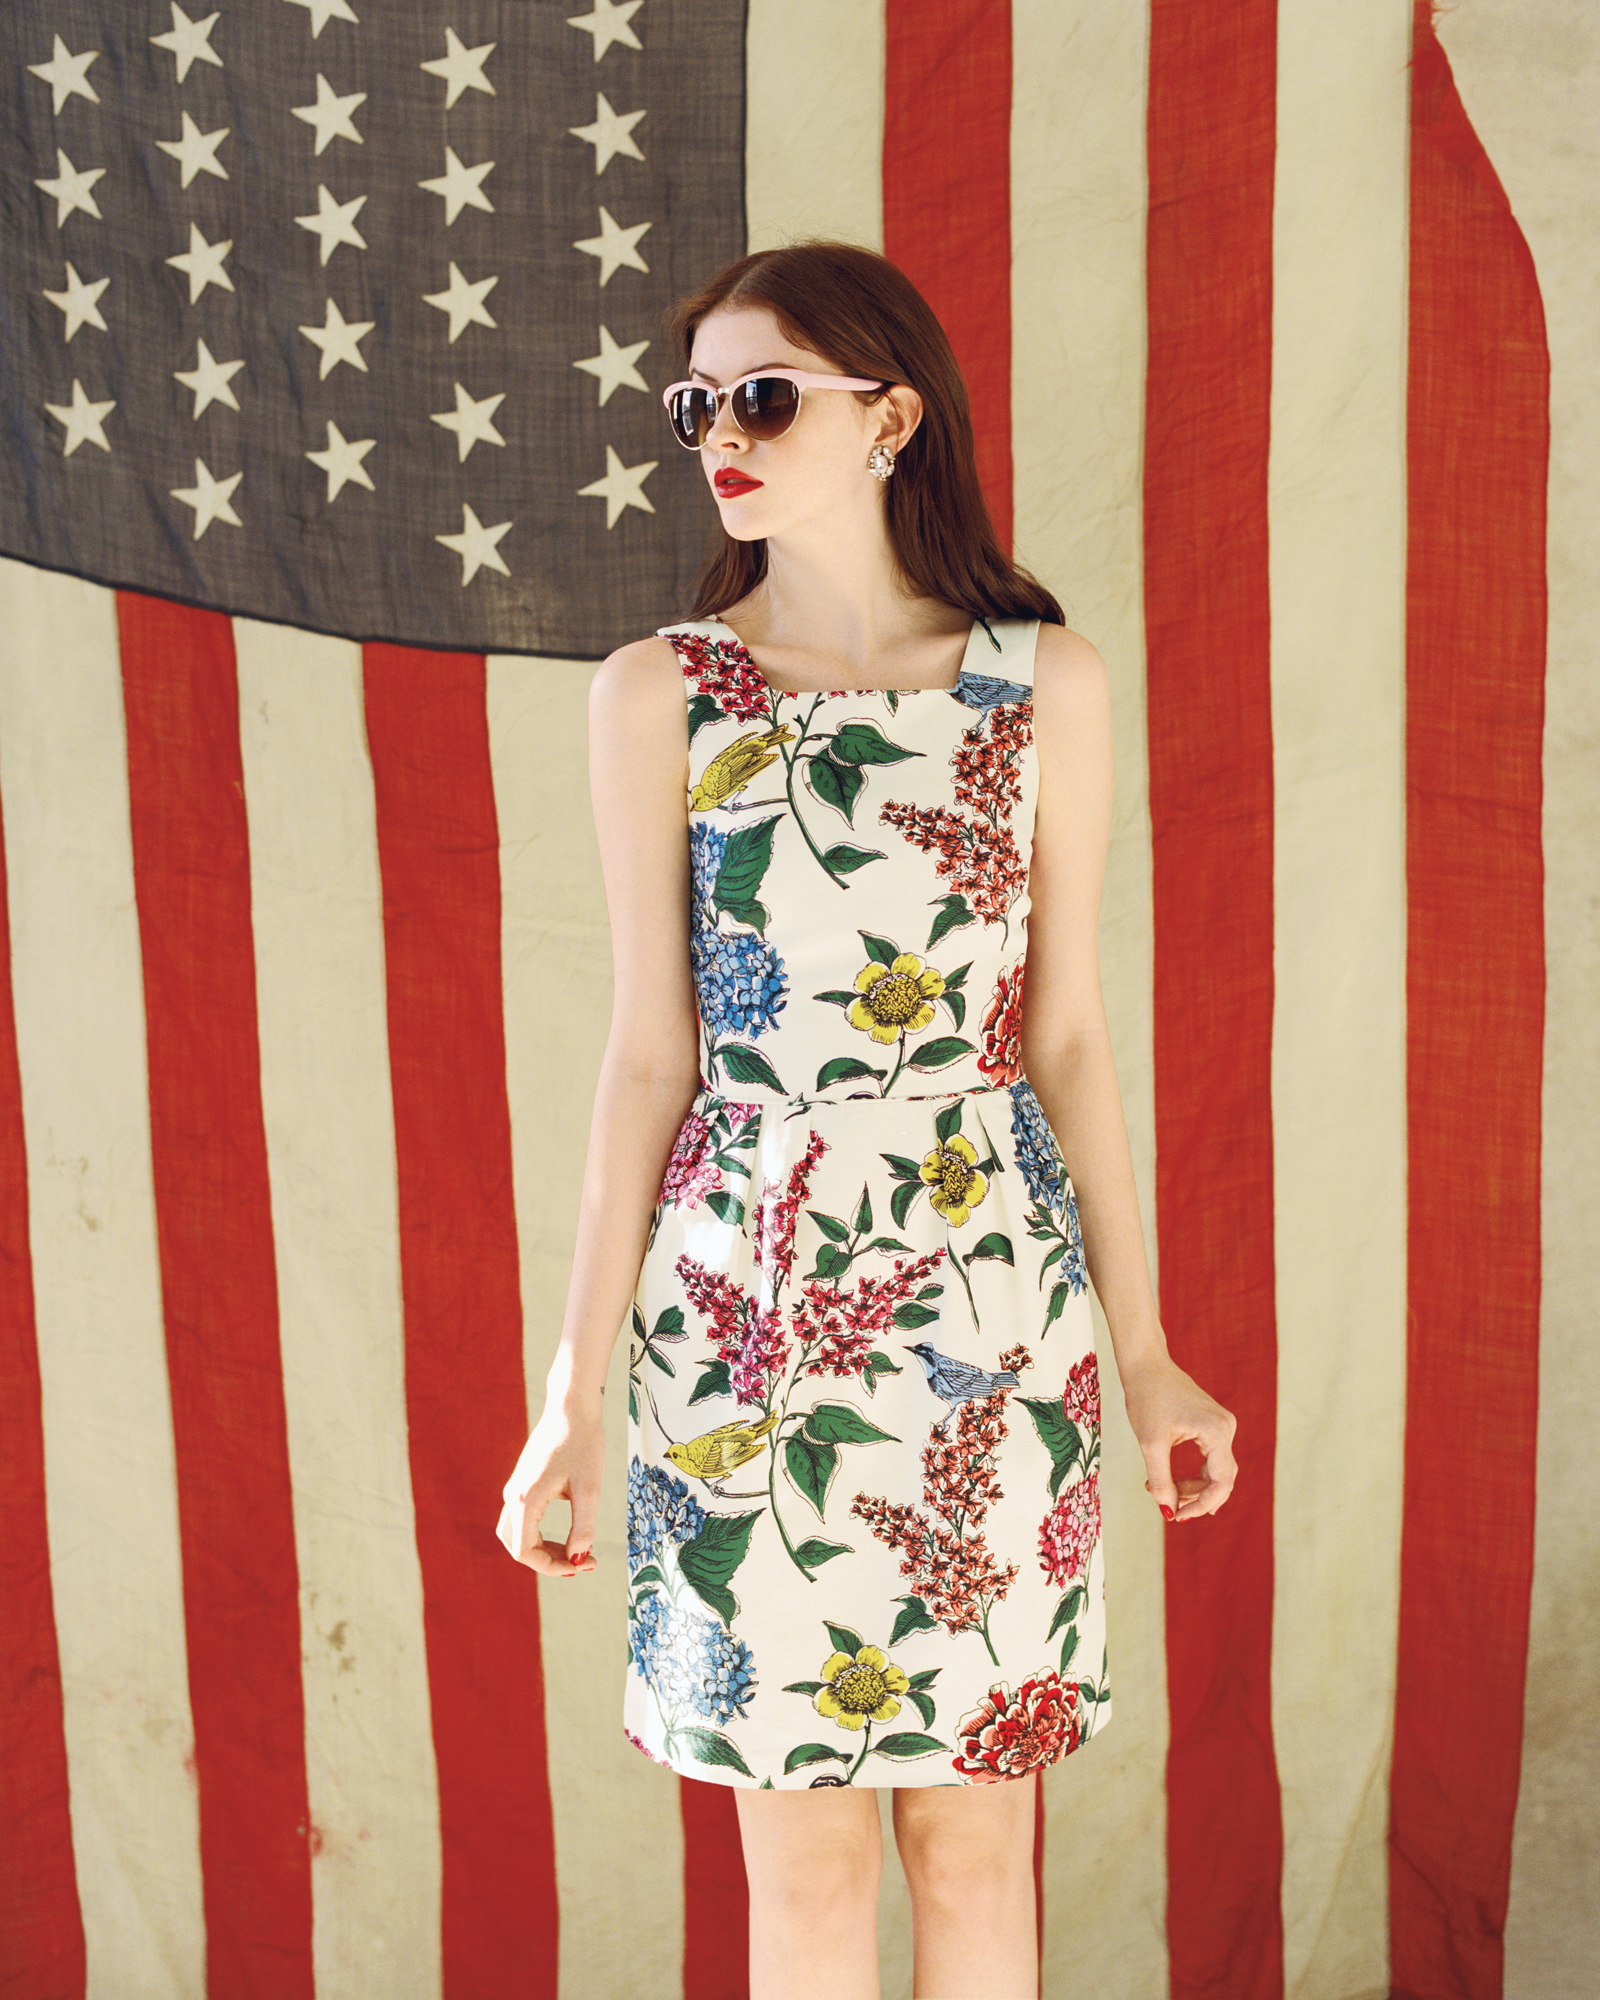 Model wearing floral dress and cateye sunglasses